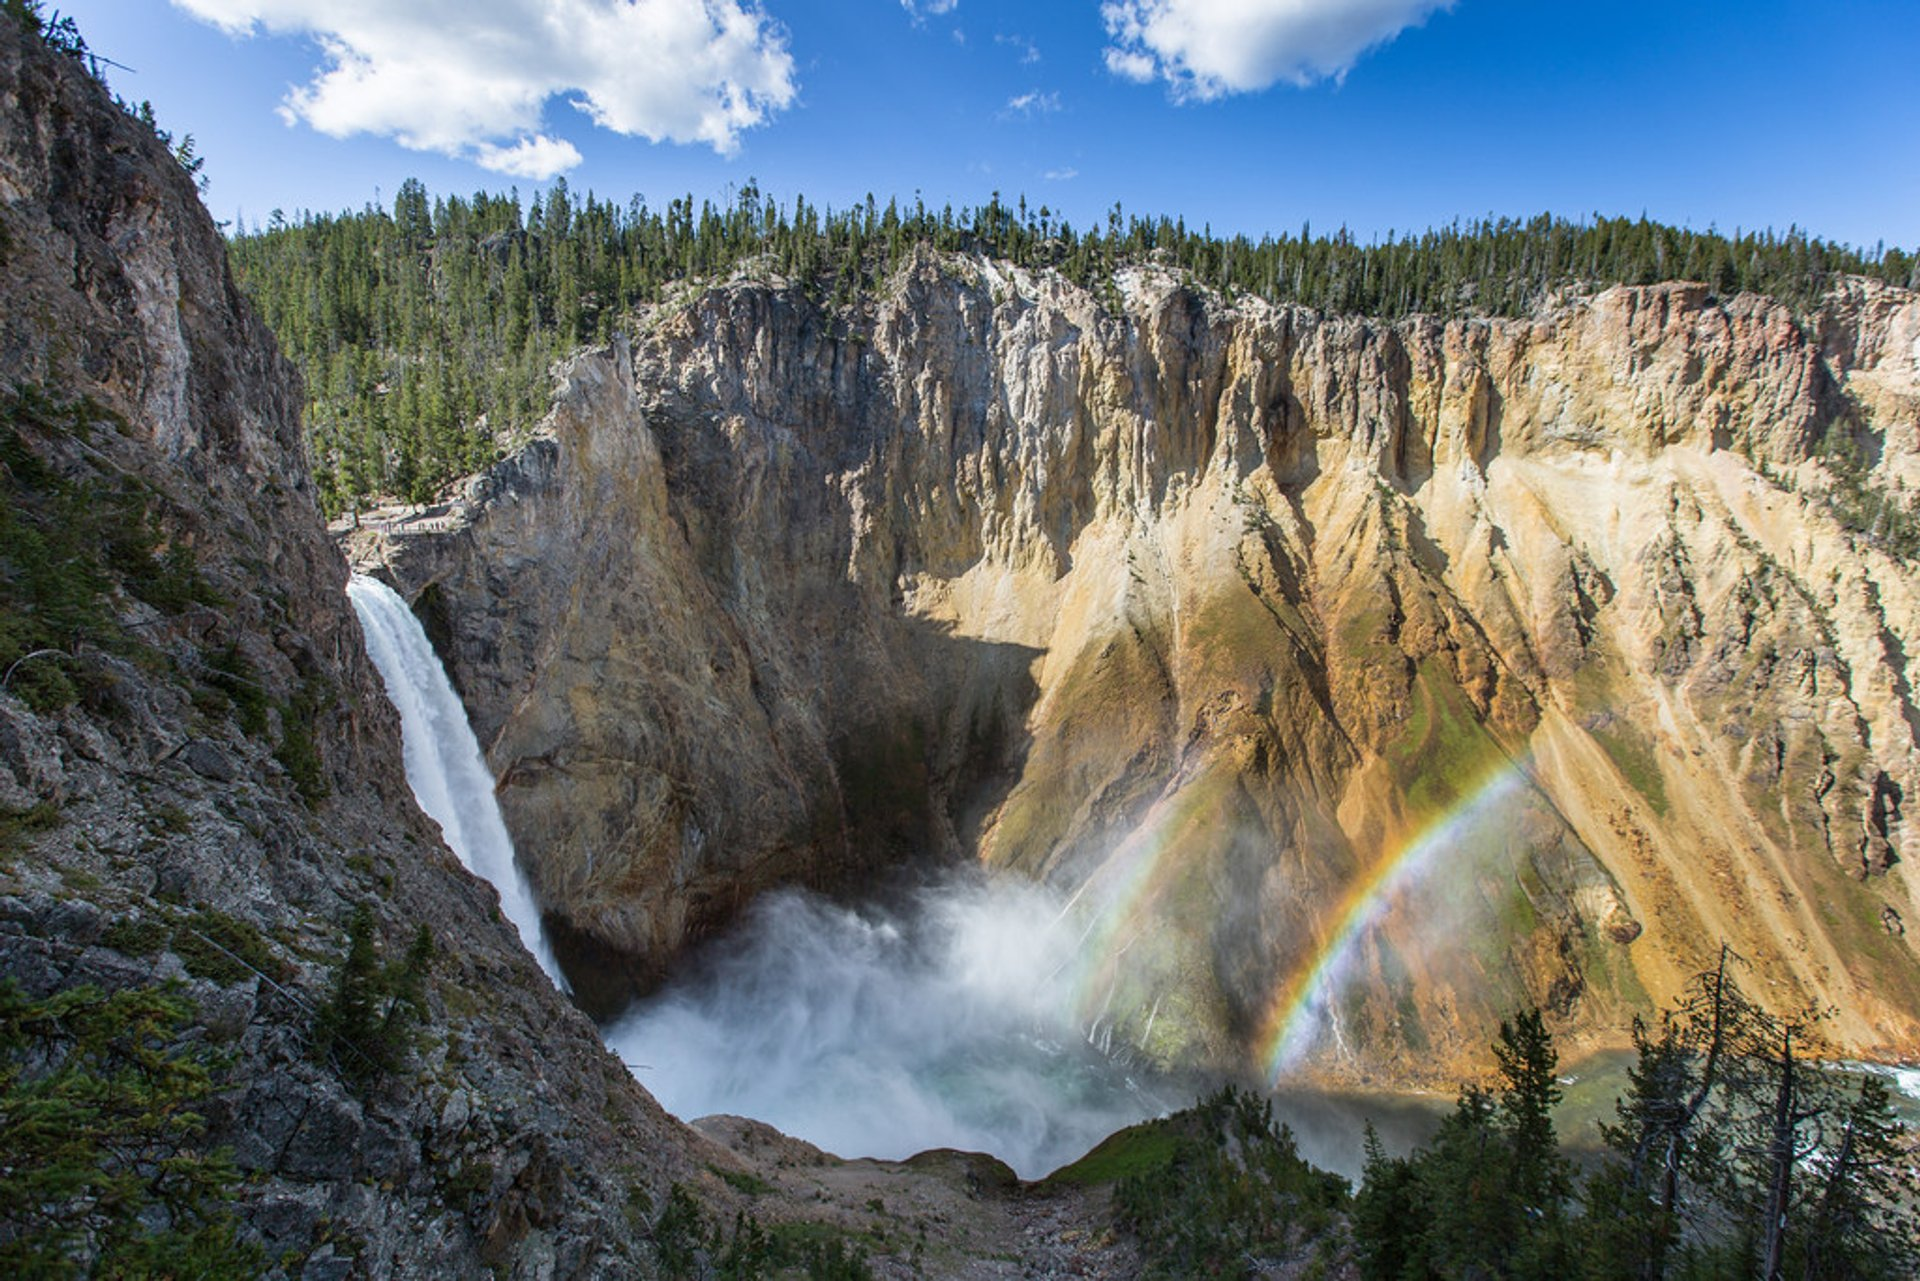 Double rainbow at the Lower Falls of the Yellowstone River 2020